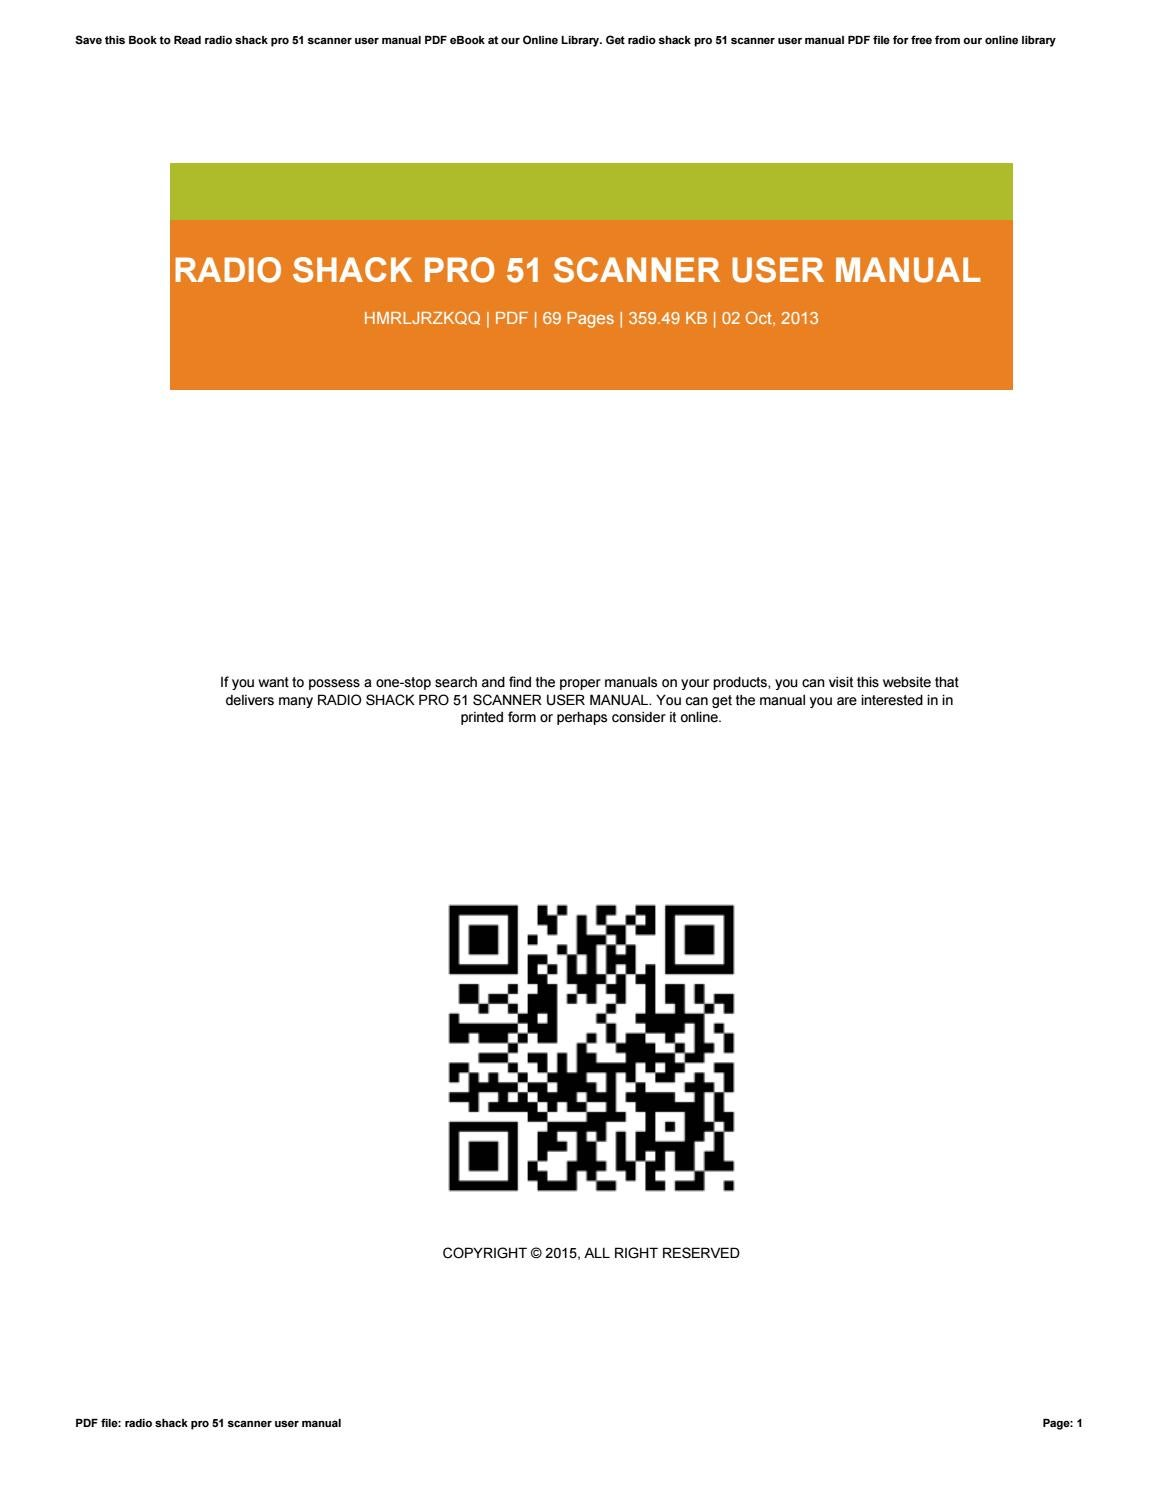 Radio shack pro 51 scanner user manual by MargaretHester1238 - issuu